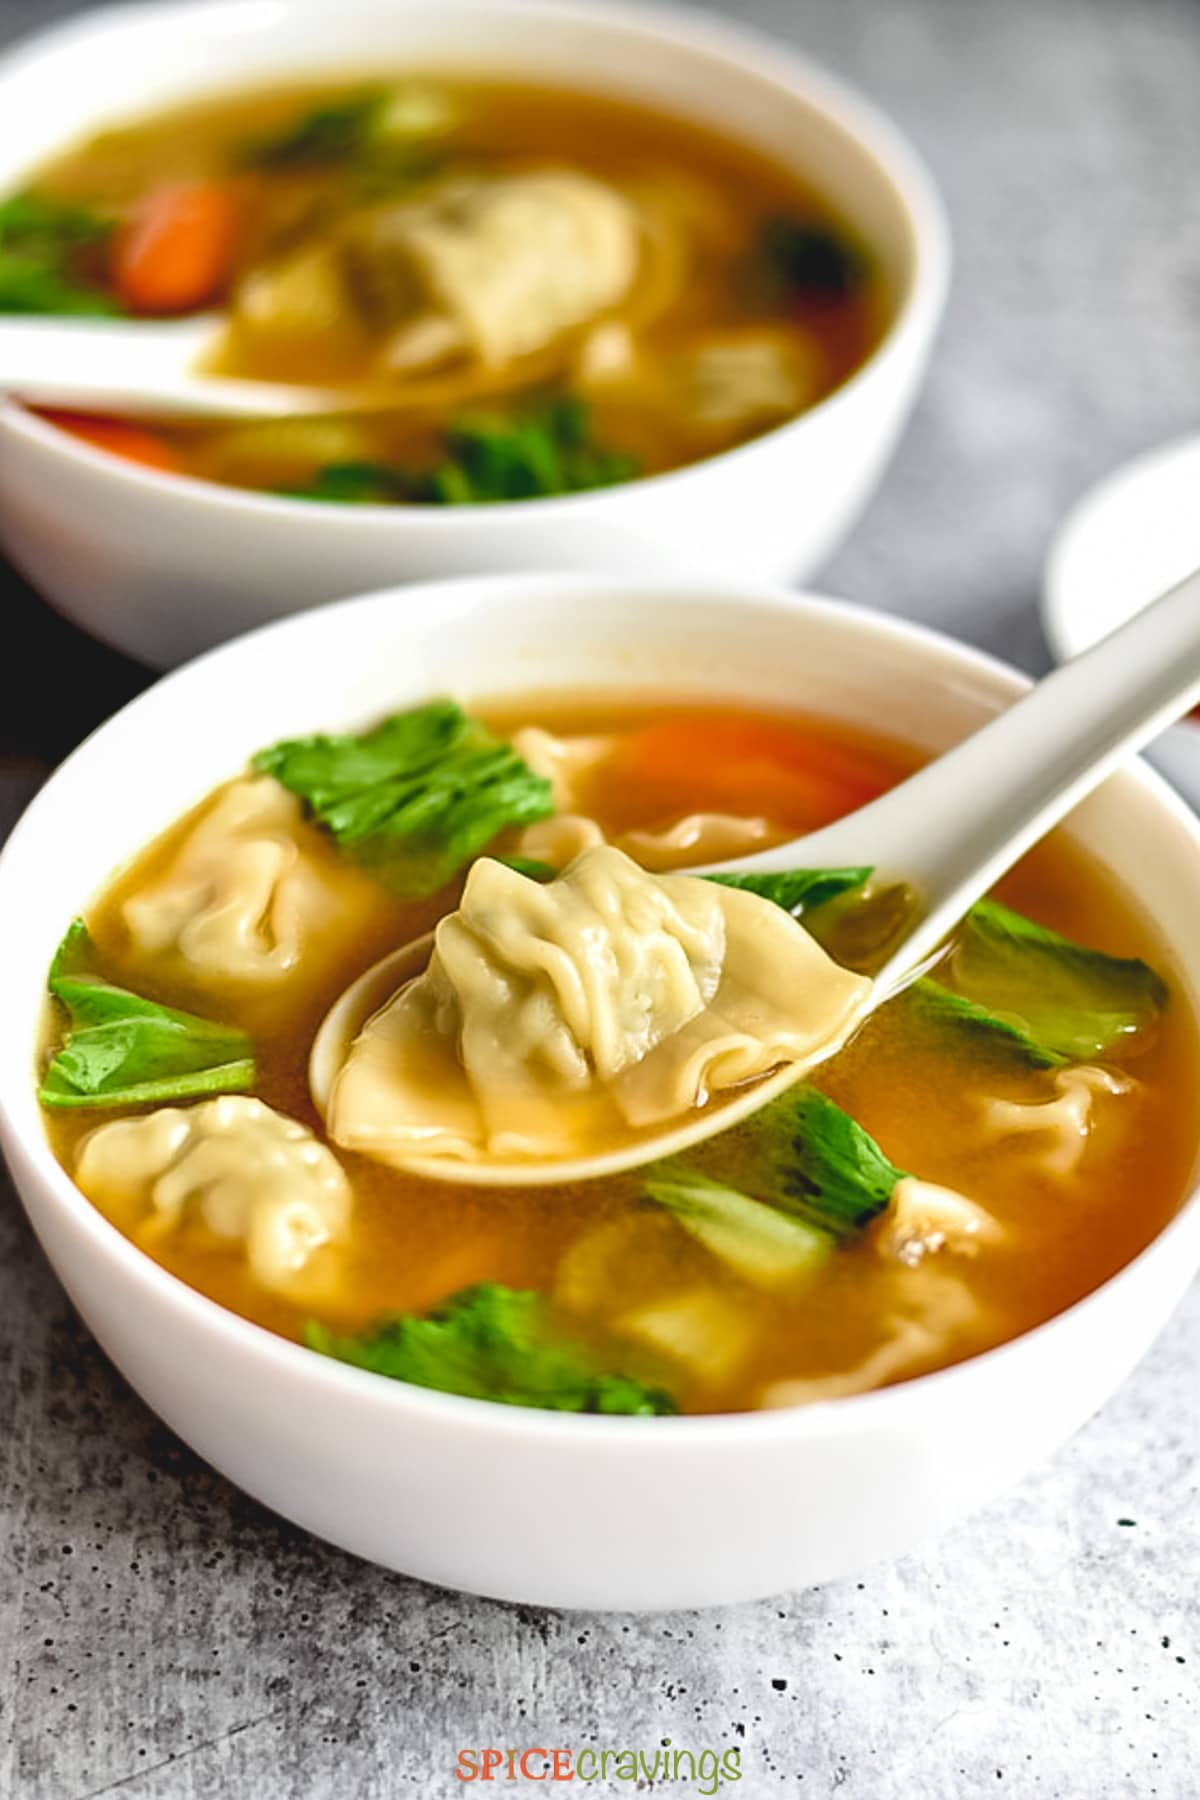 Two bowls of soup with dumplings, spinach and carrots